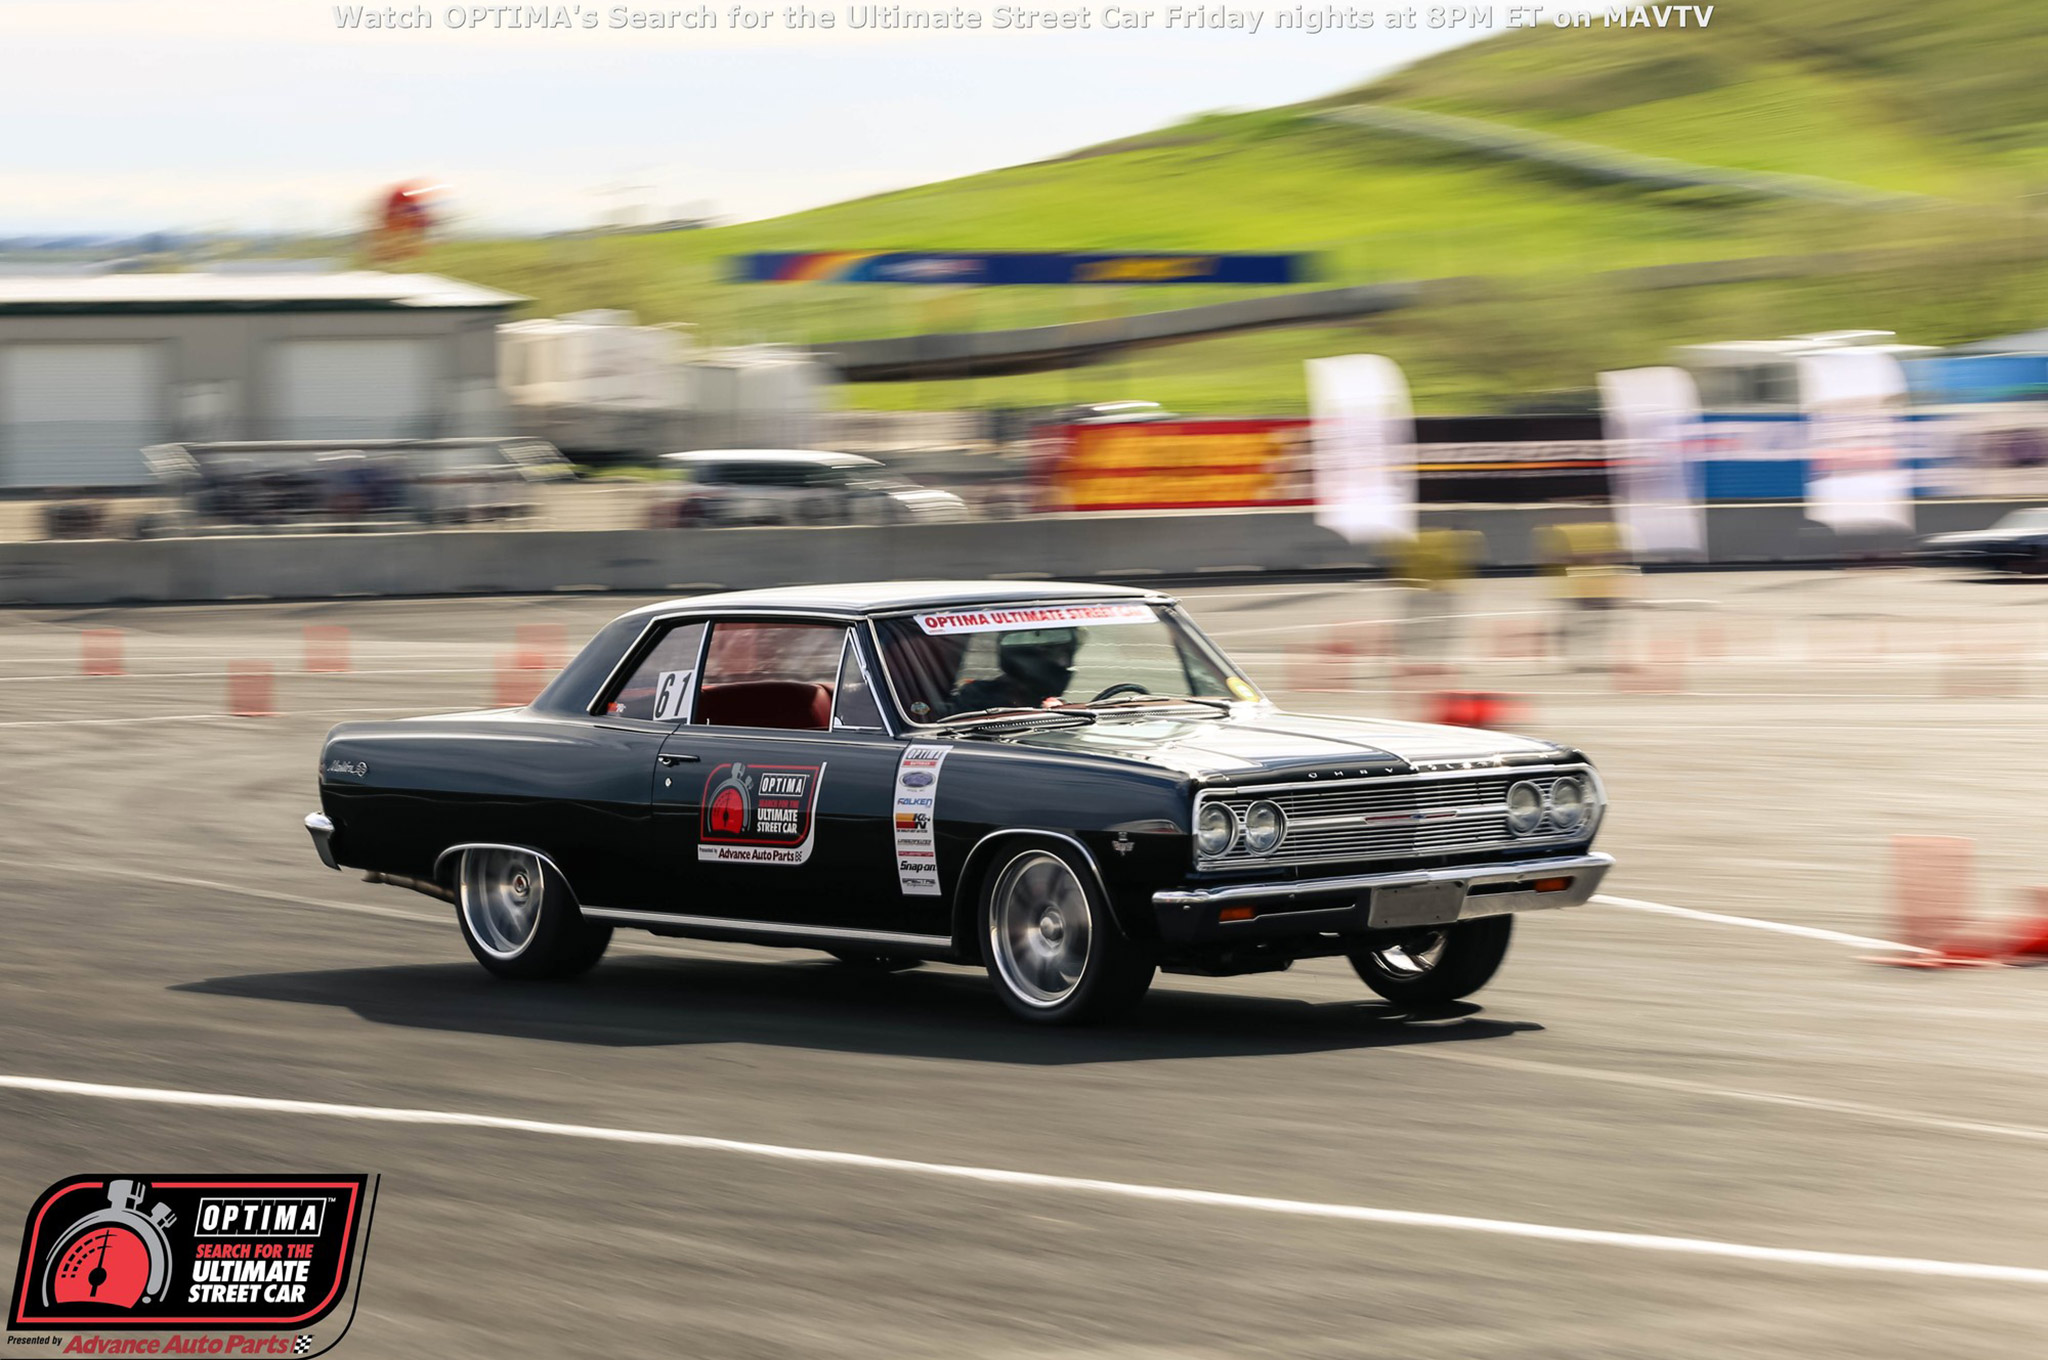 Sometimes we're amazed at the quality of the vehicles that run in these events. Gil Alfonso's 1965 Chevelle would've been just as well-suited to rotate on a mirrored display at the Detroit Autorama, but he decided to beat on it at a racetrack instead. Alfonso finished 11th in the GTV class, but was the overall winner in the Lingenfelter Design & Engineering Challenge.